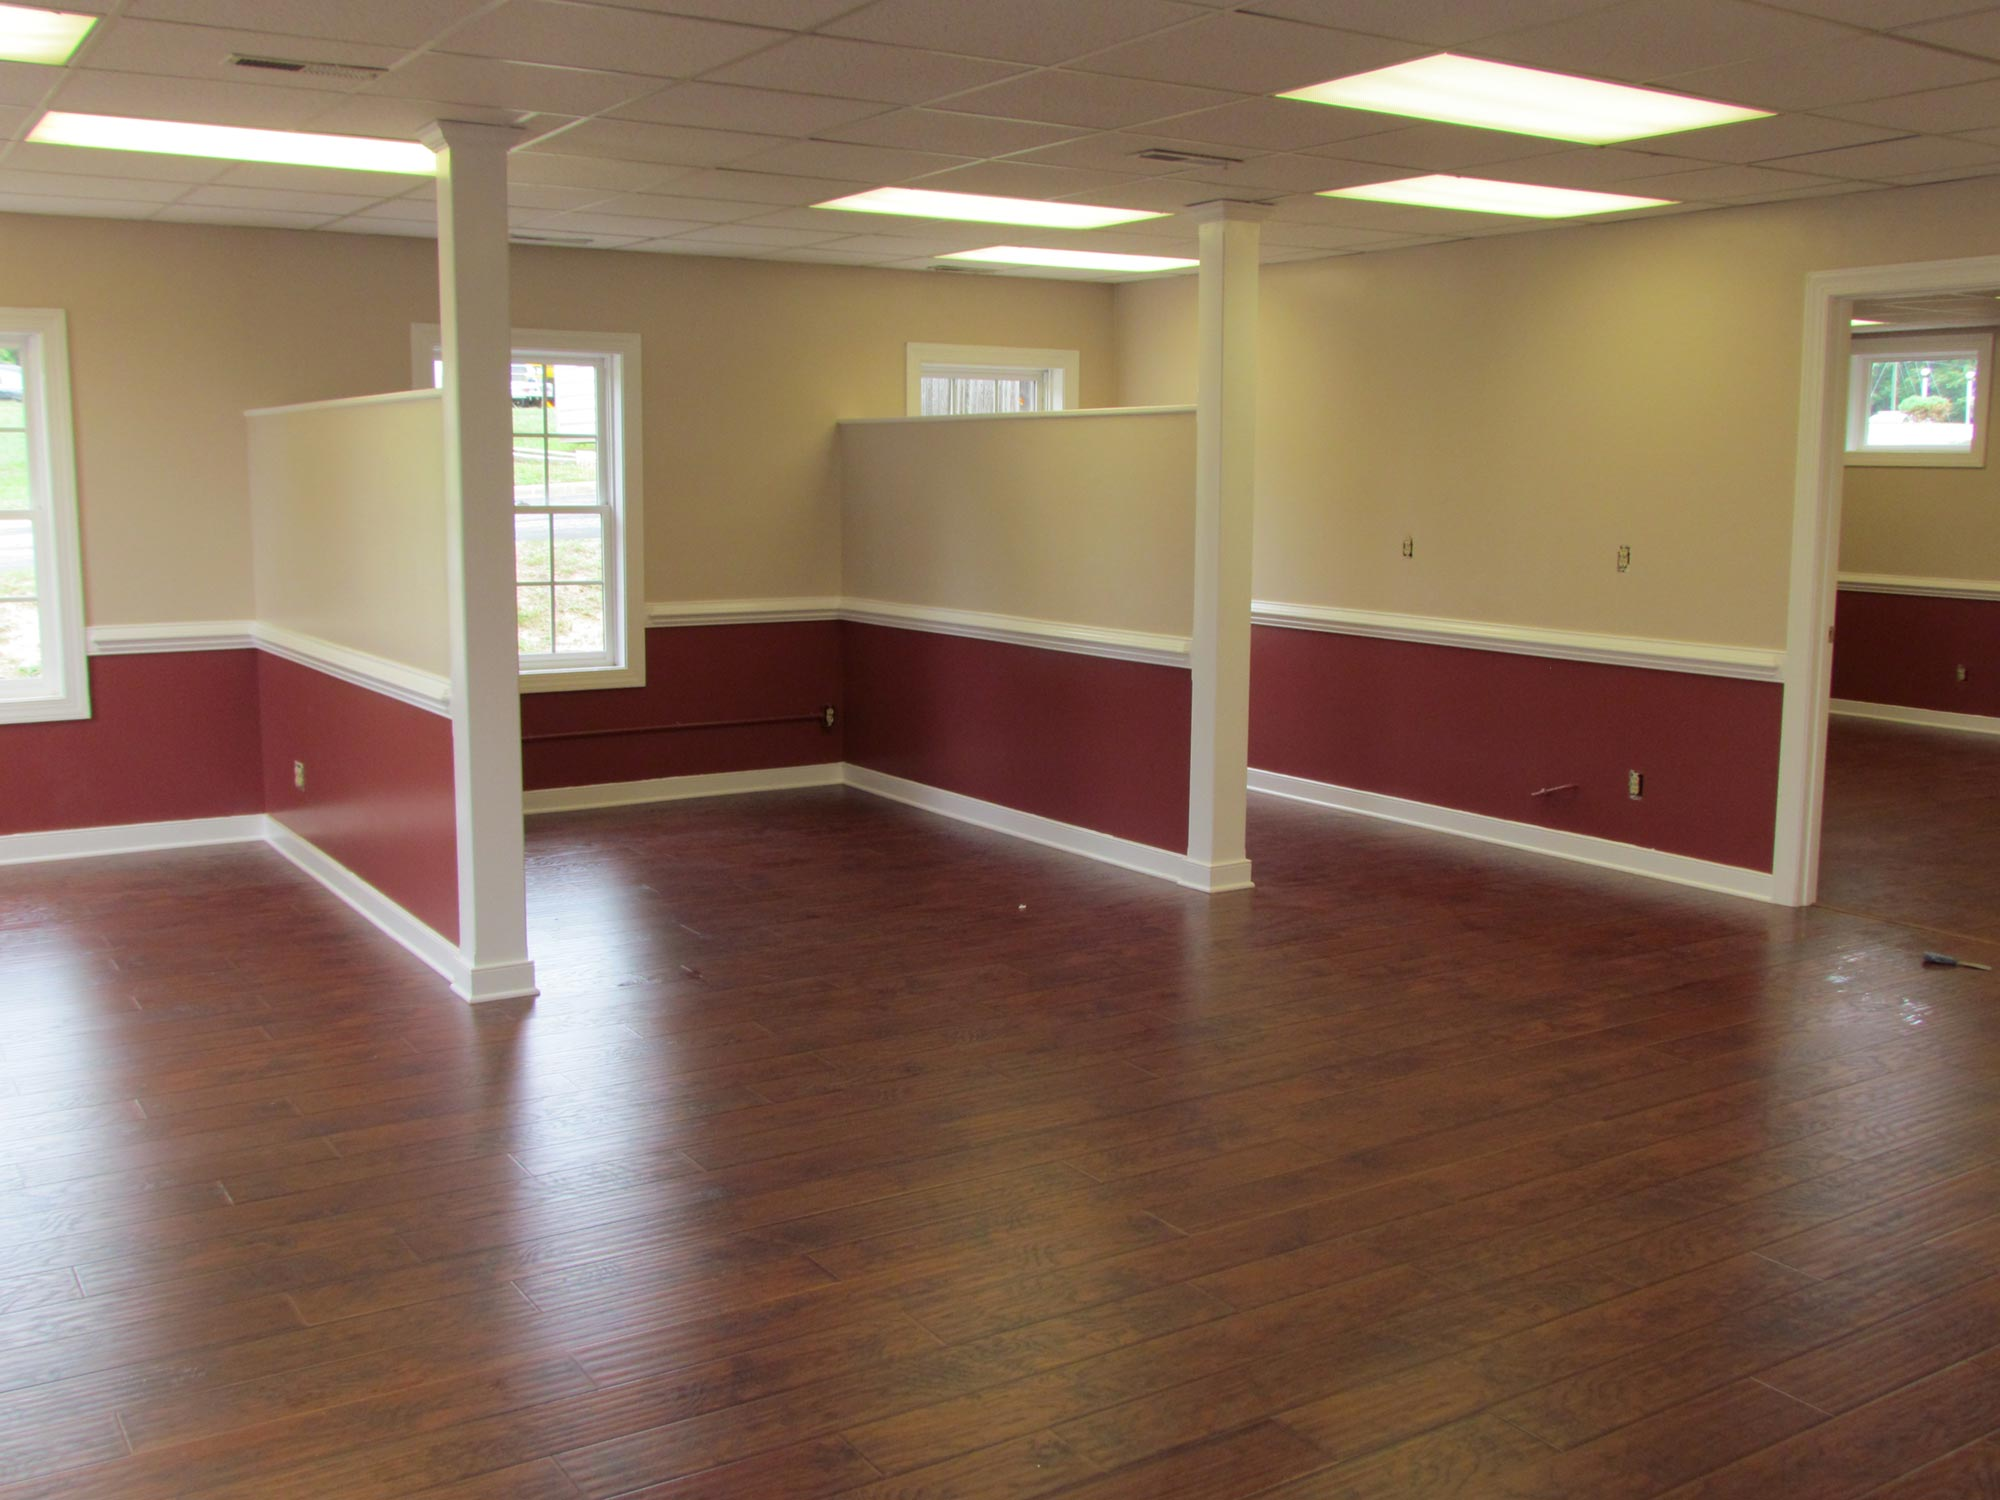 Office Space In Chesterfield Va Rva Remodeling Llc